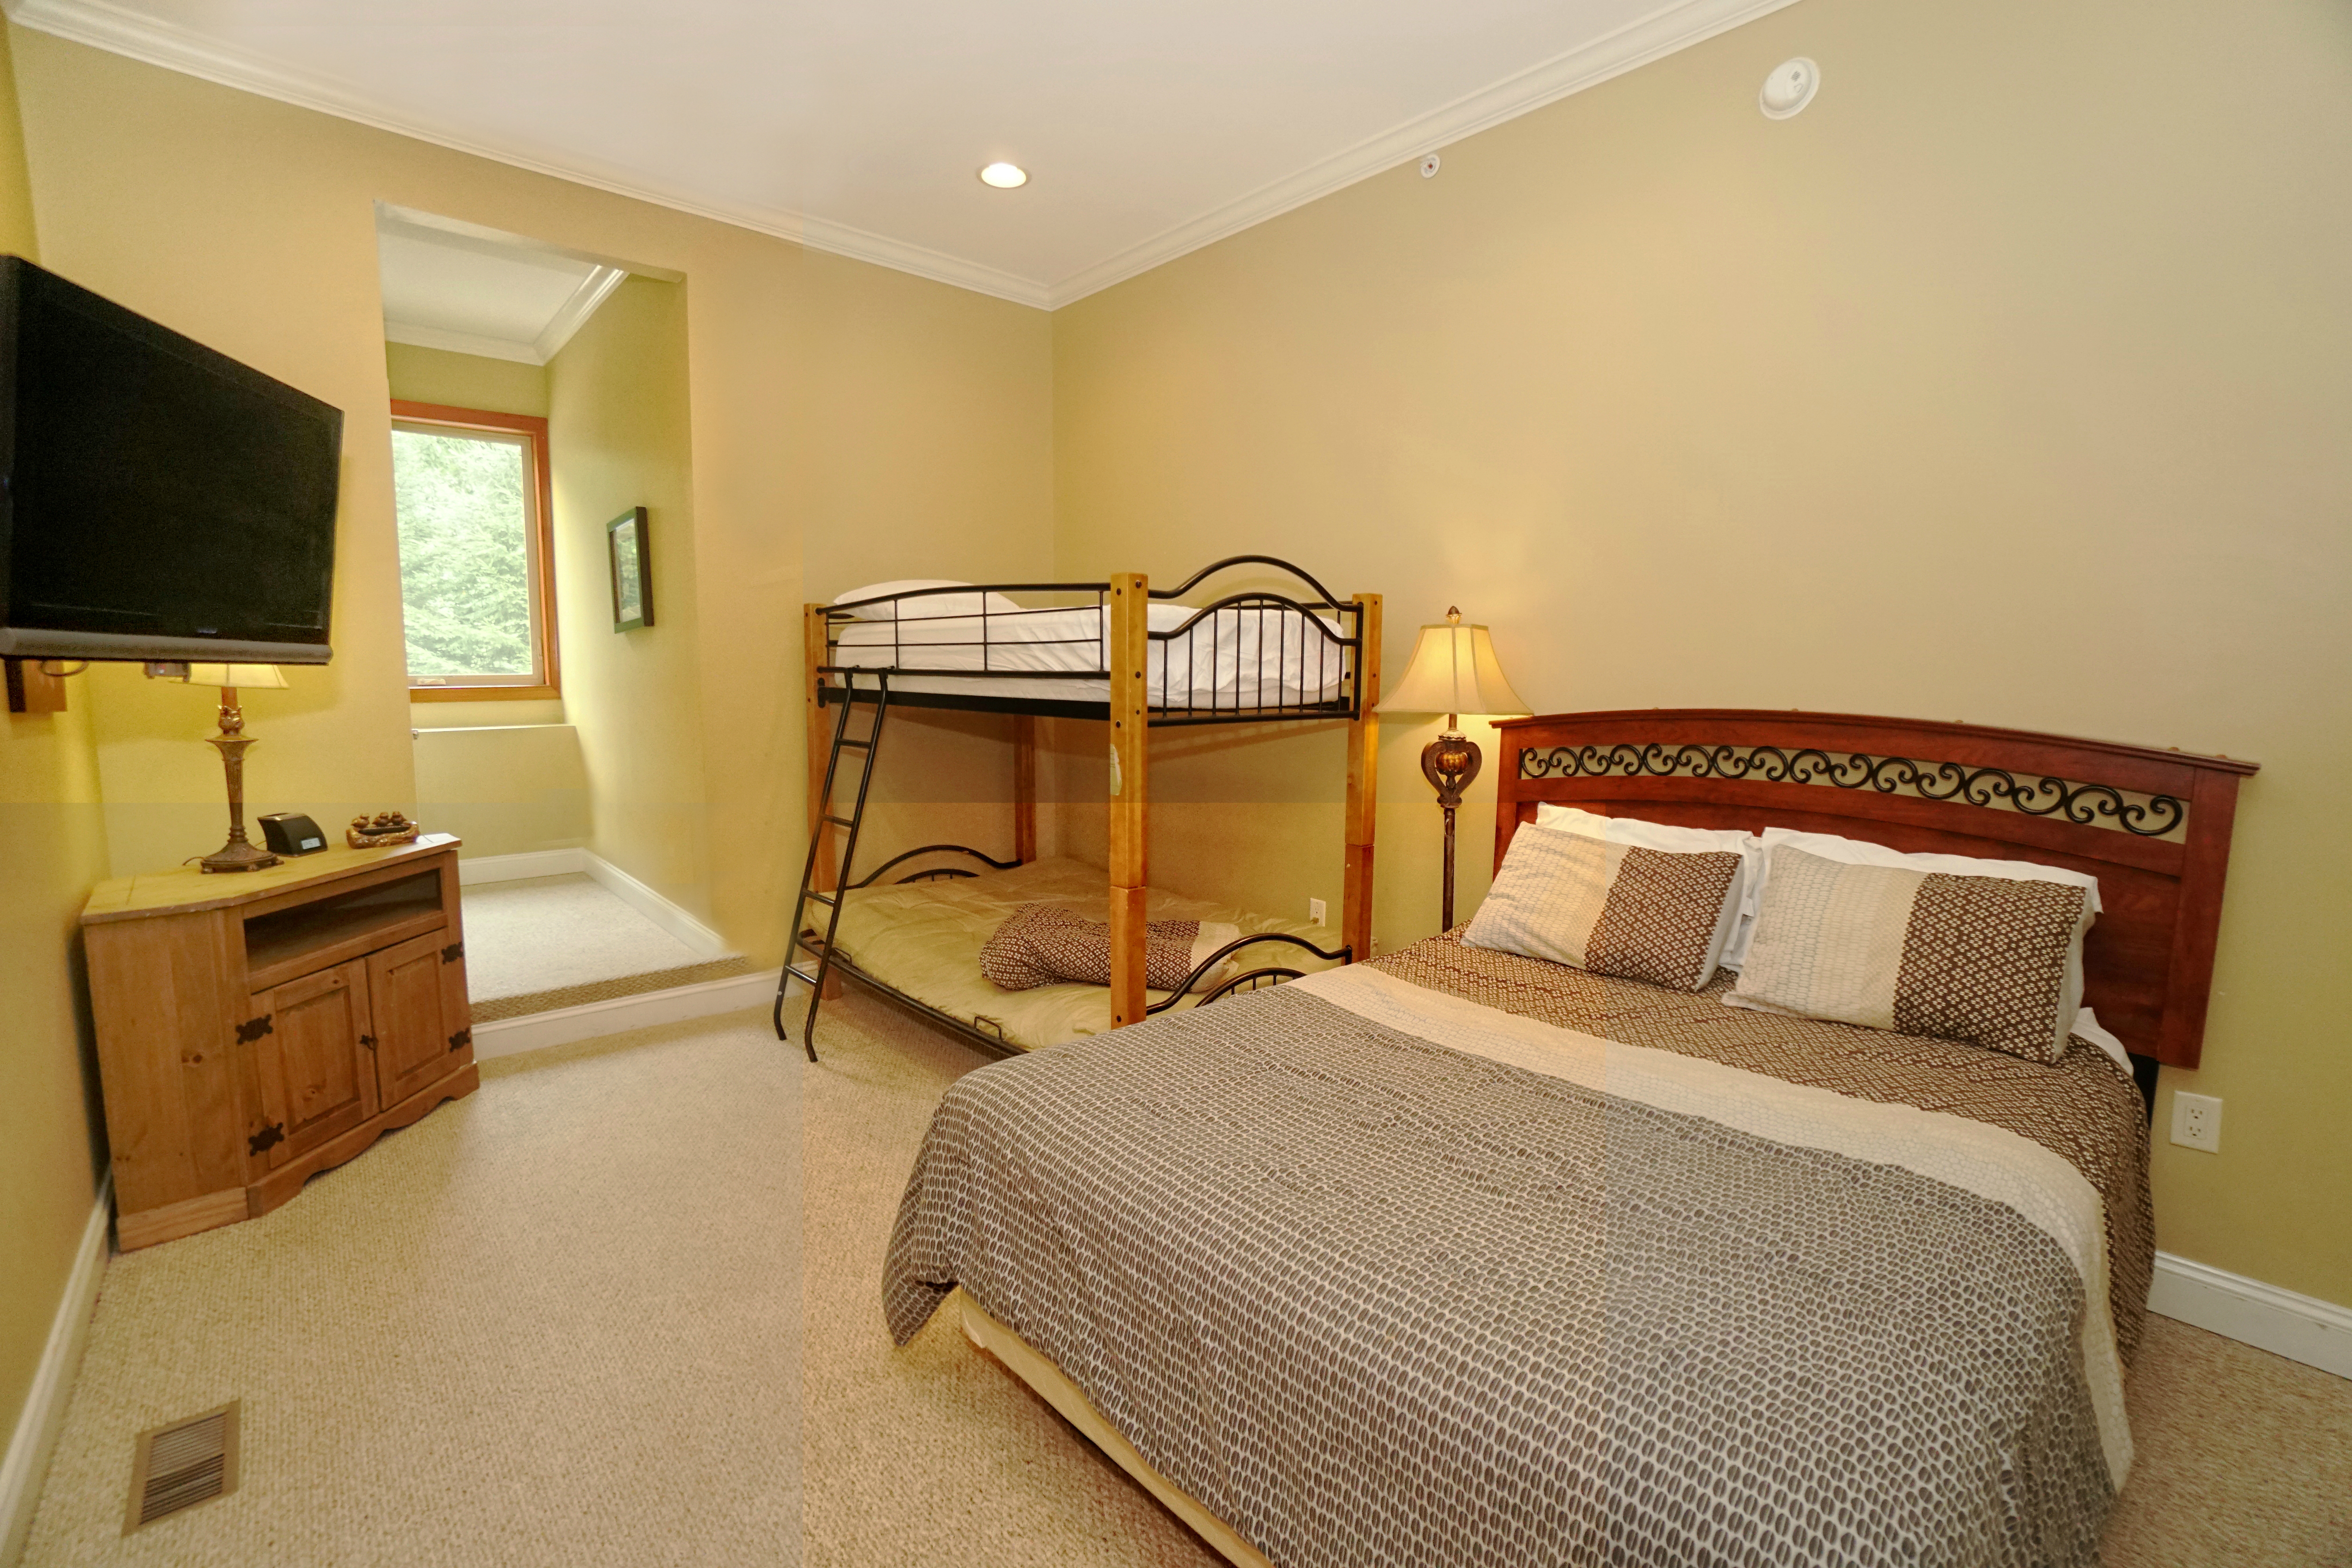 Vacation Rental By Owner Lower Level Bunk Room Deep